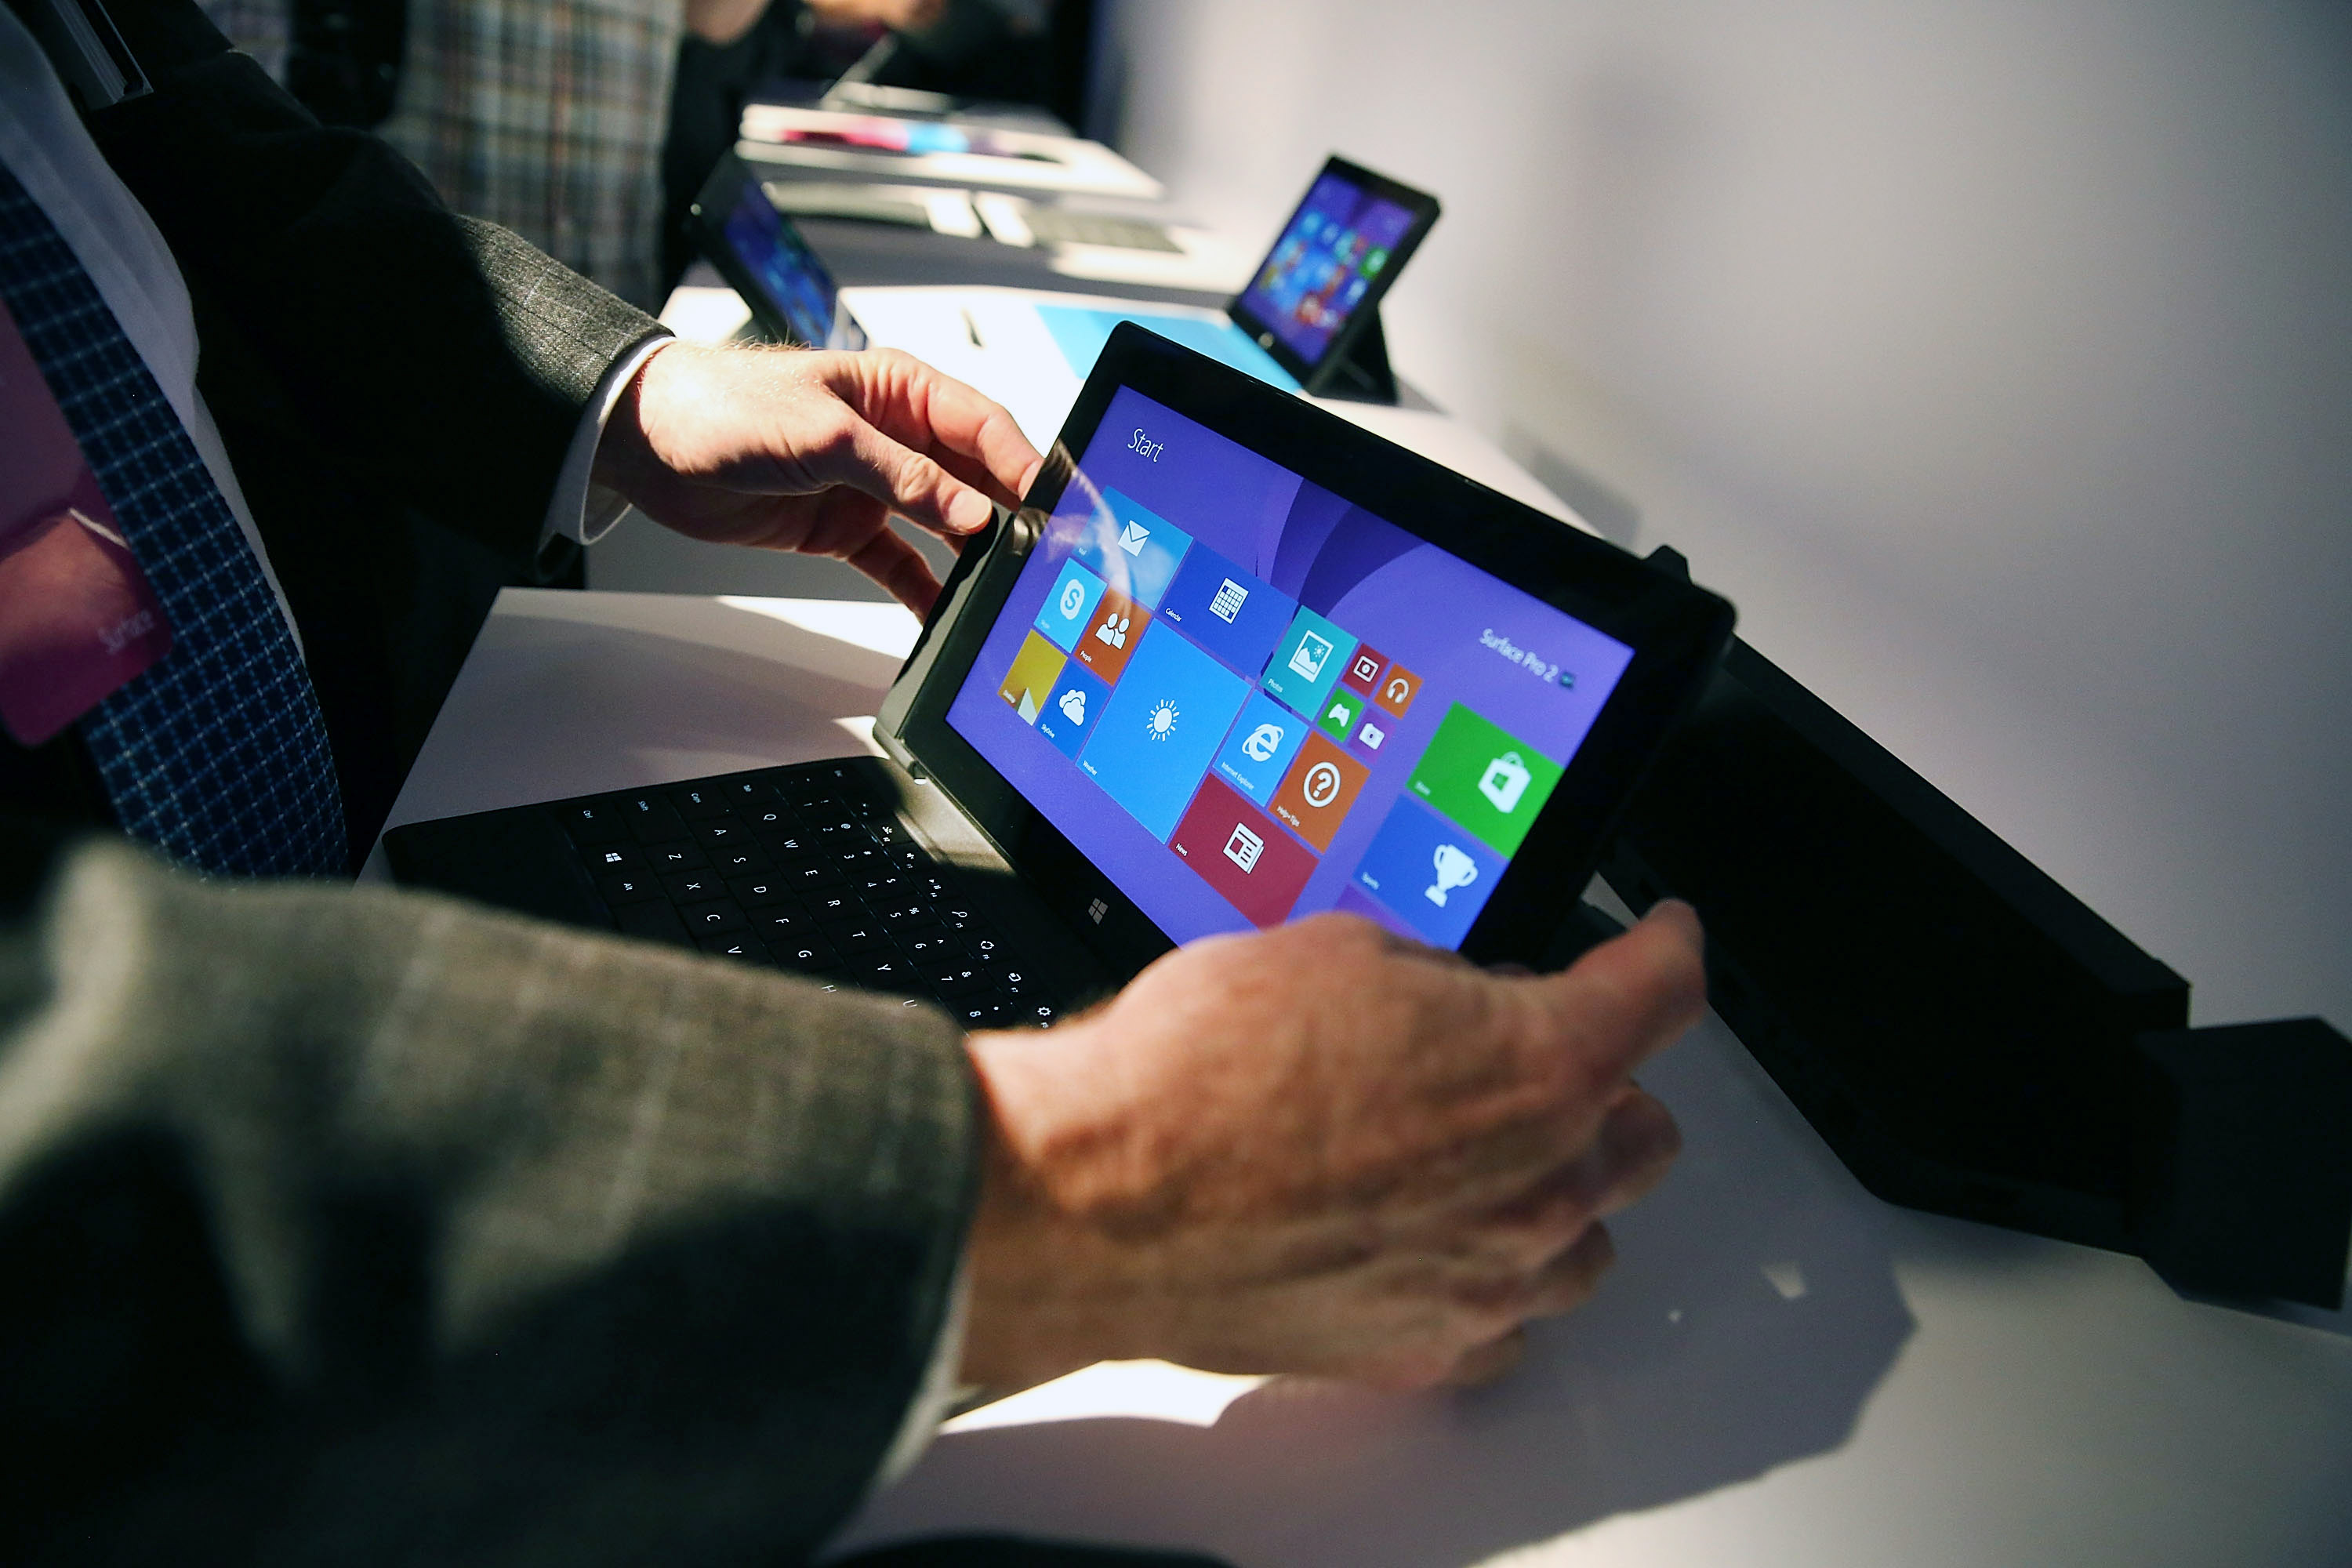 Microsoft Cuts Surface Pro 3 Price by 10% for Schools